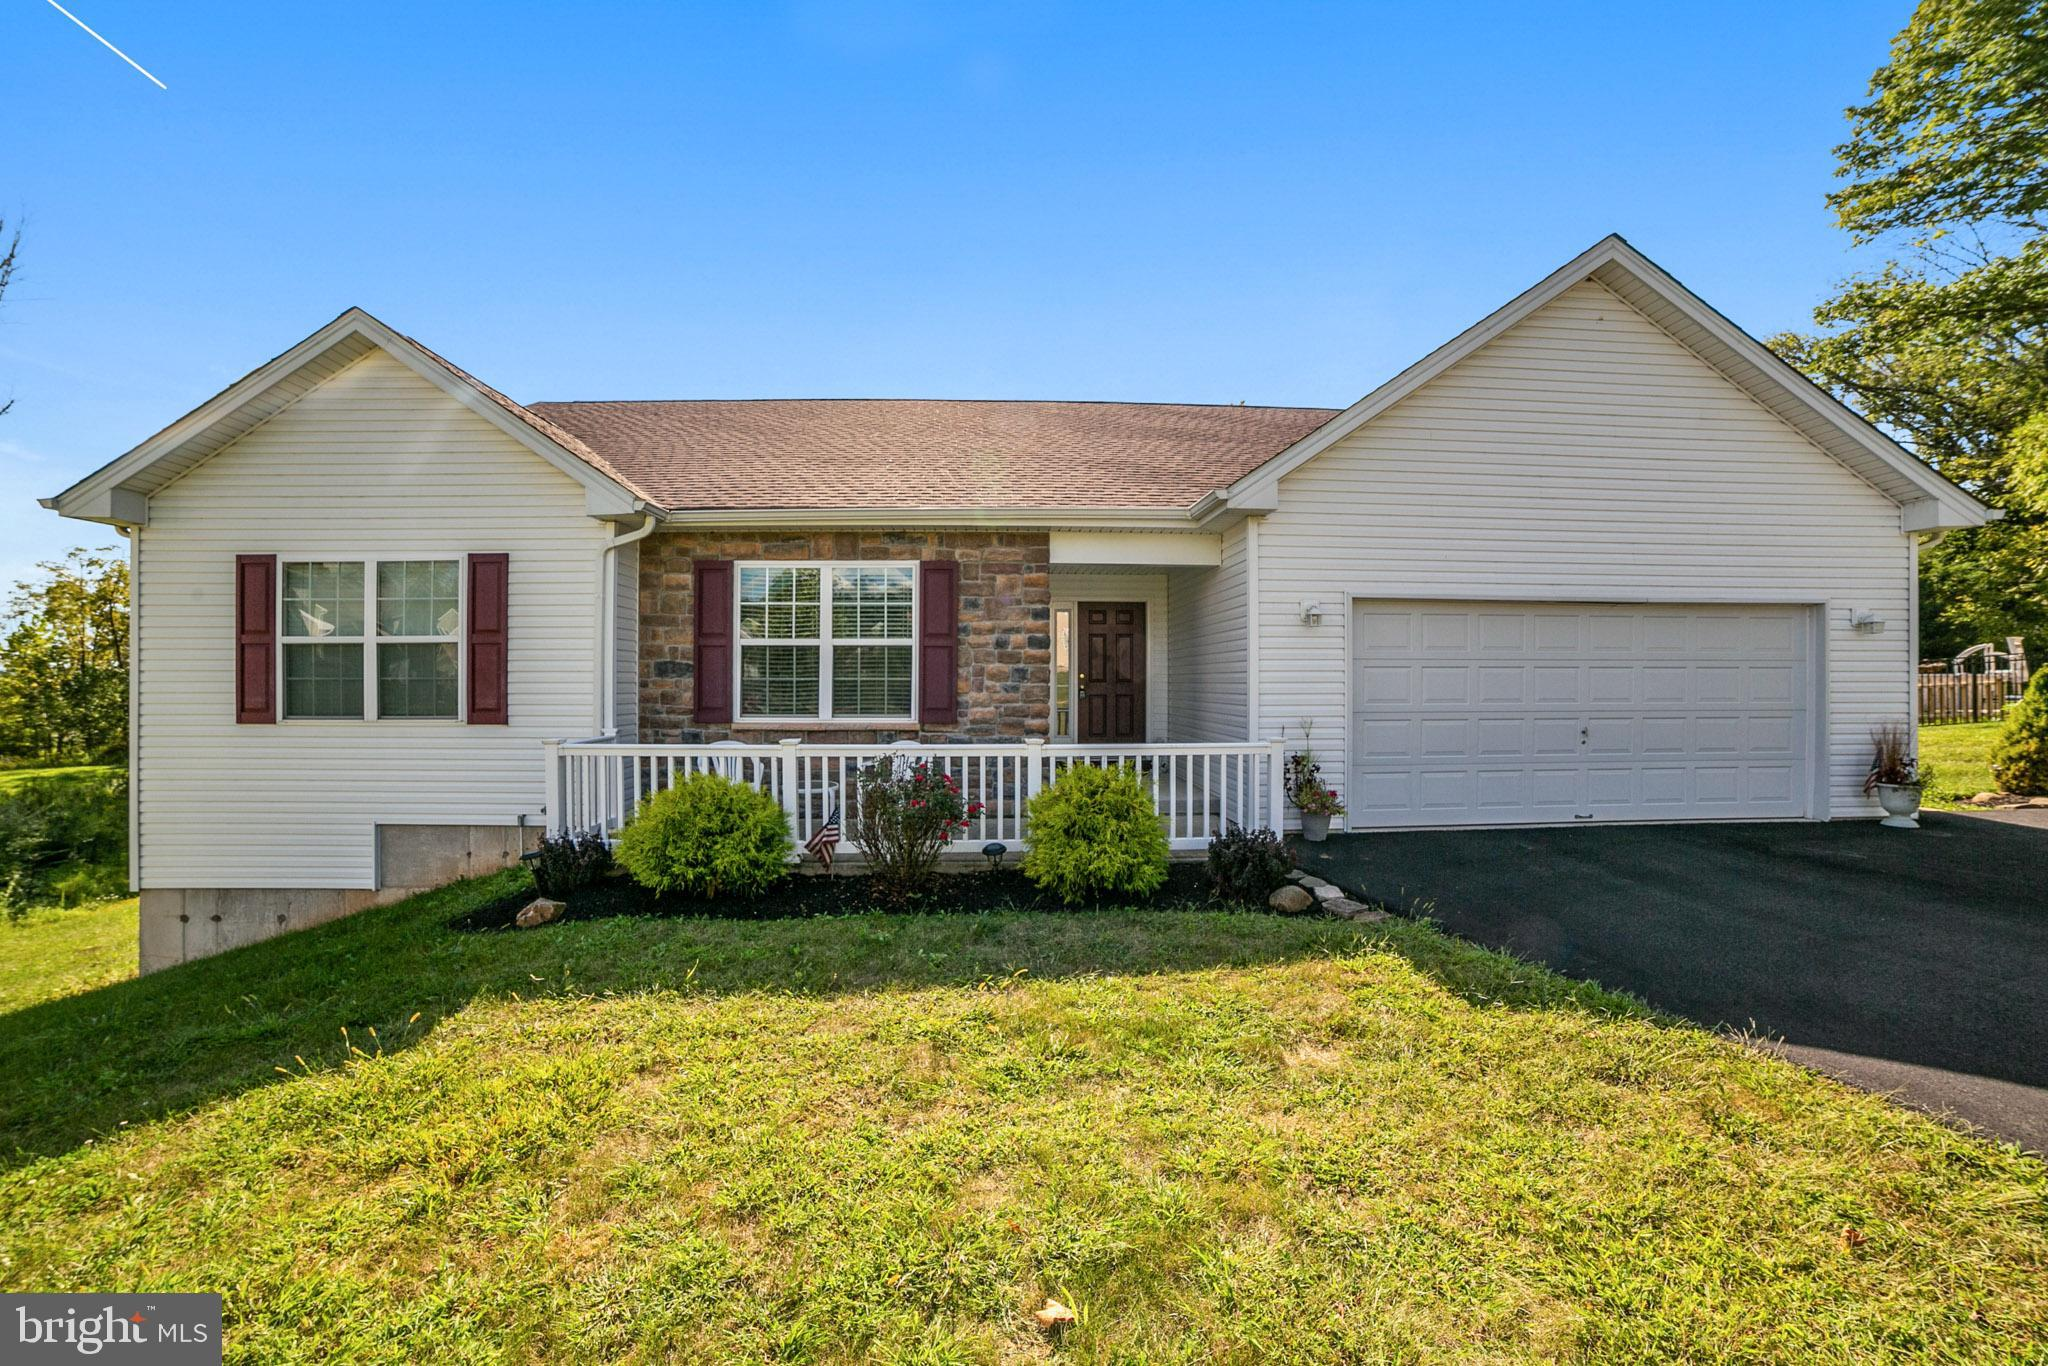 1024 VICTOR DRIVE, EAST GREENVILLE, PA 18041